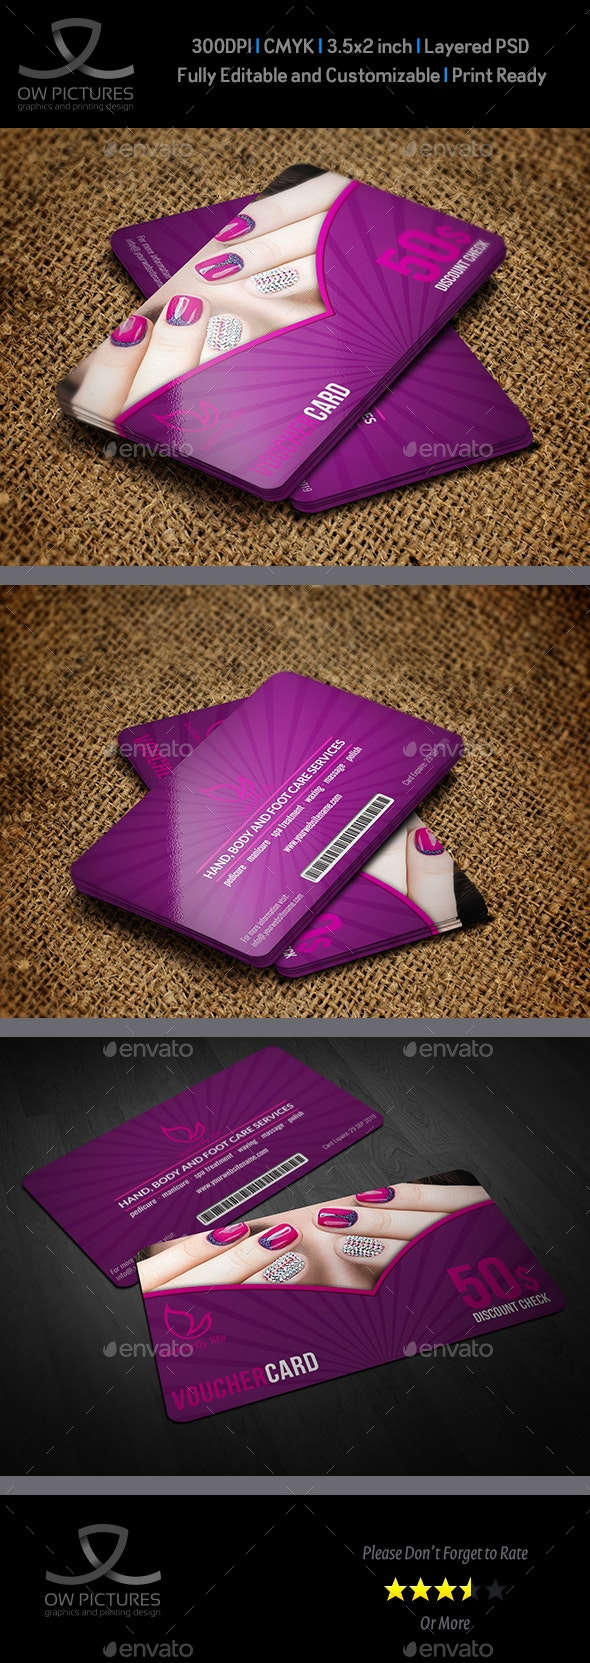 Nail Salon Gift Voucher Card Template - Cards & Invites Print Templates